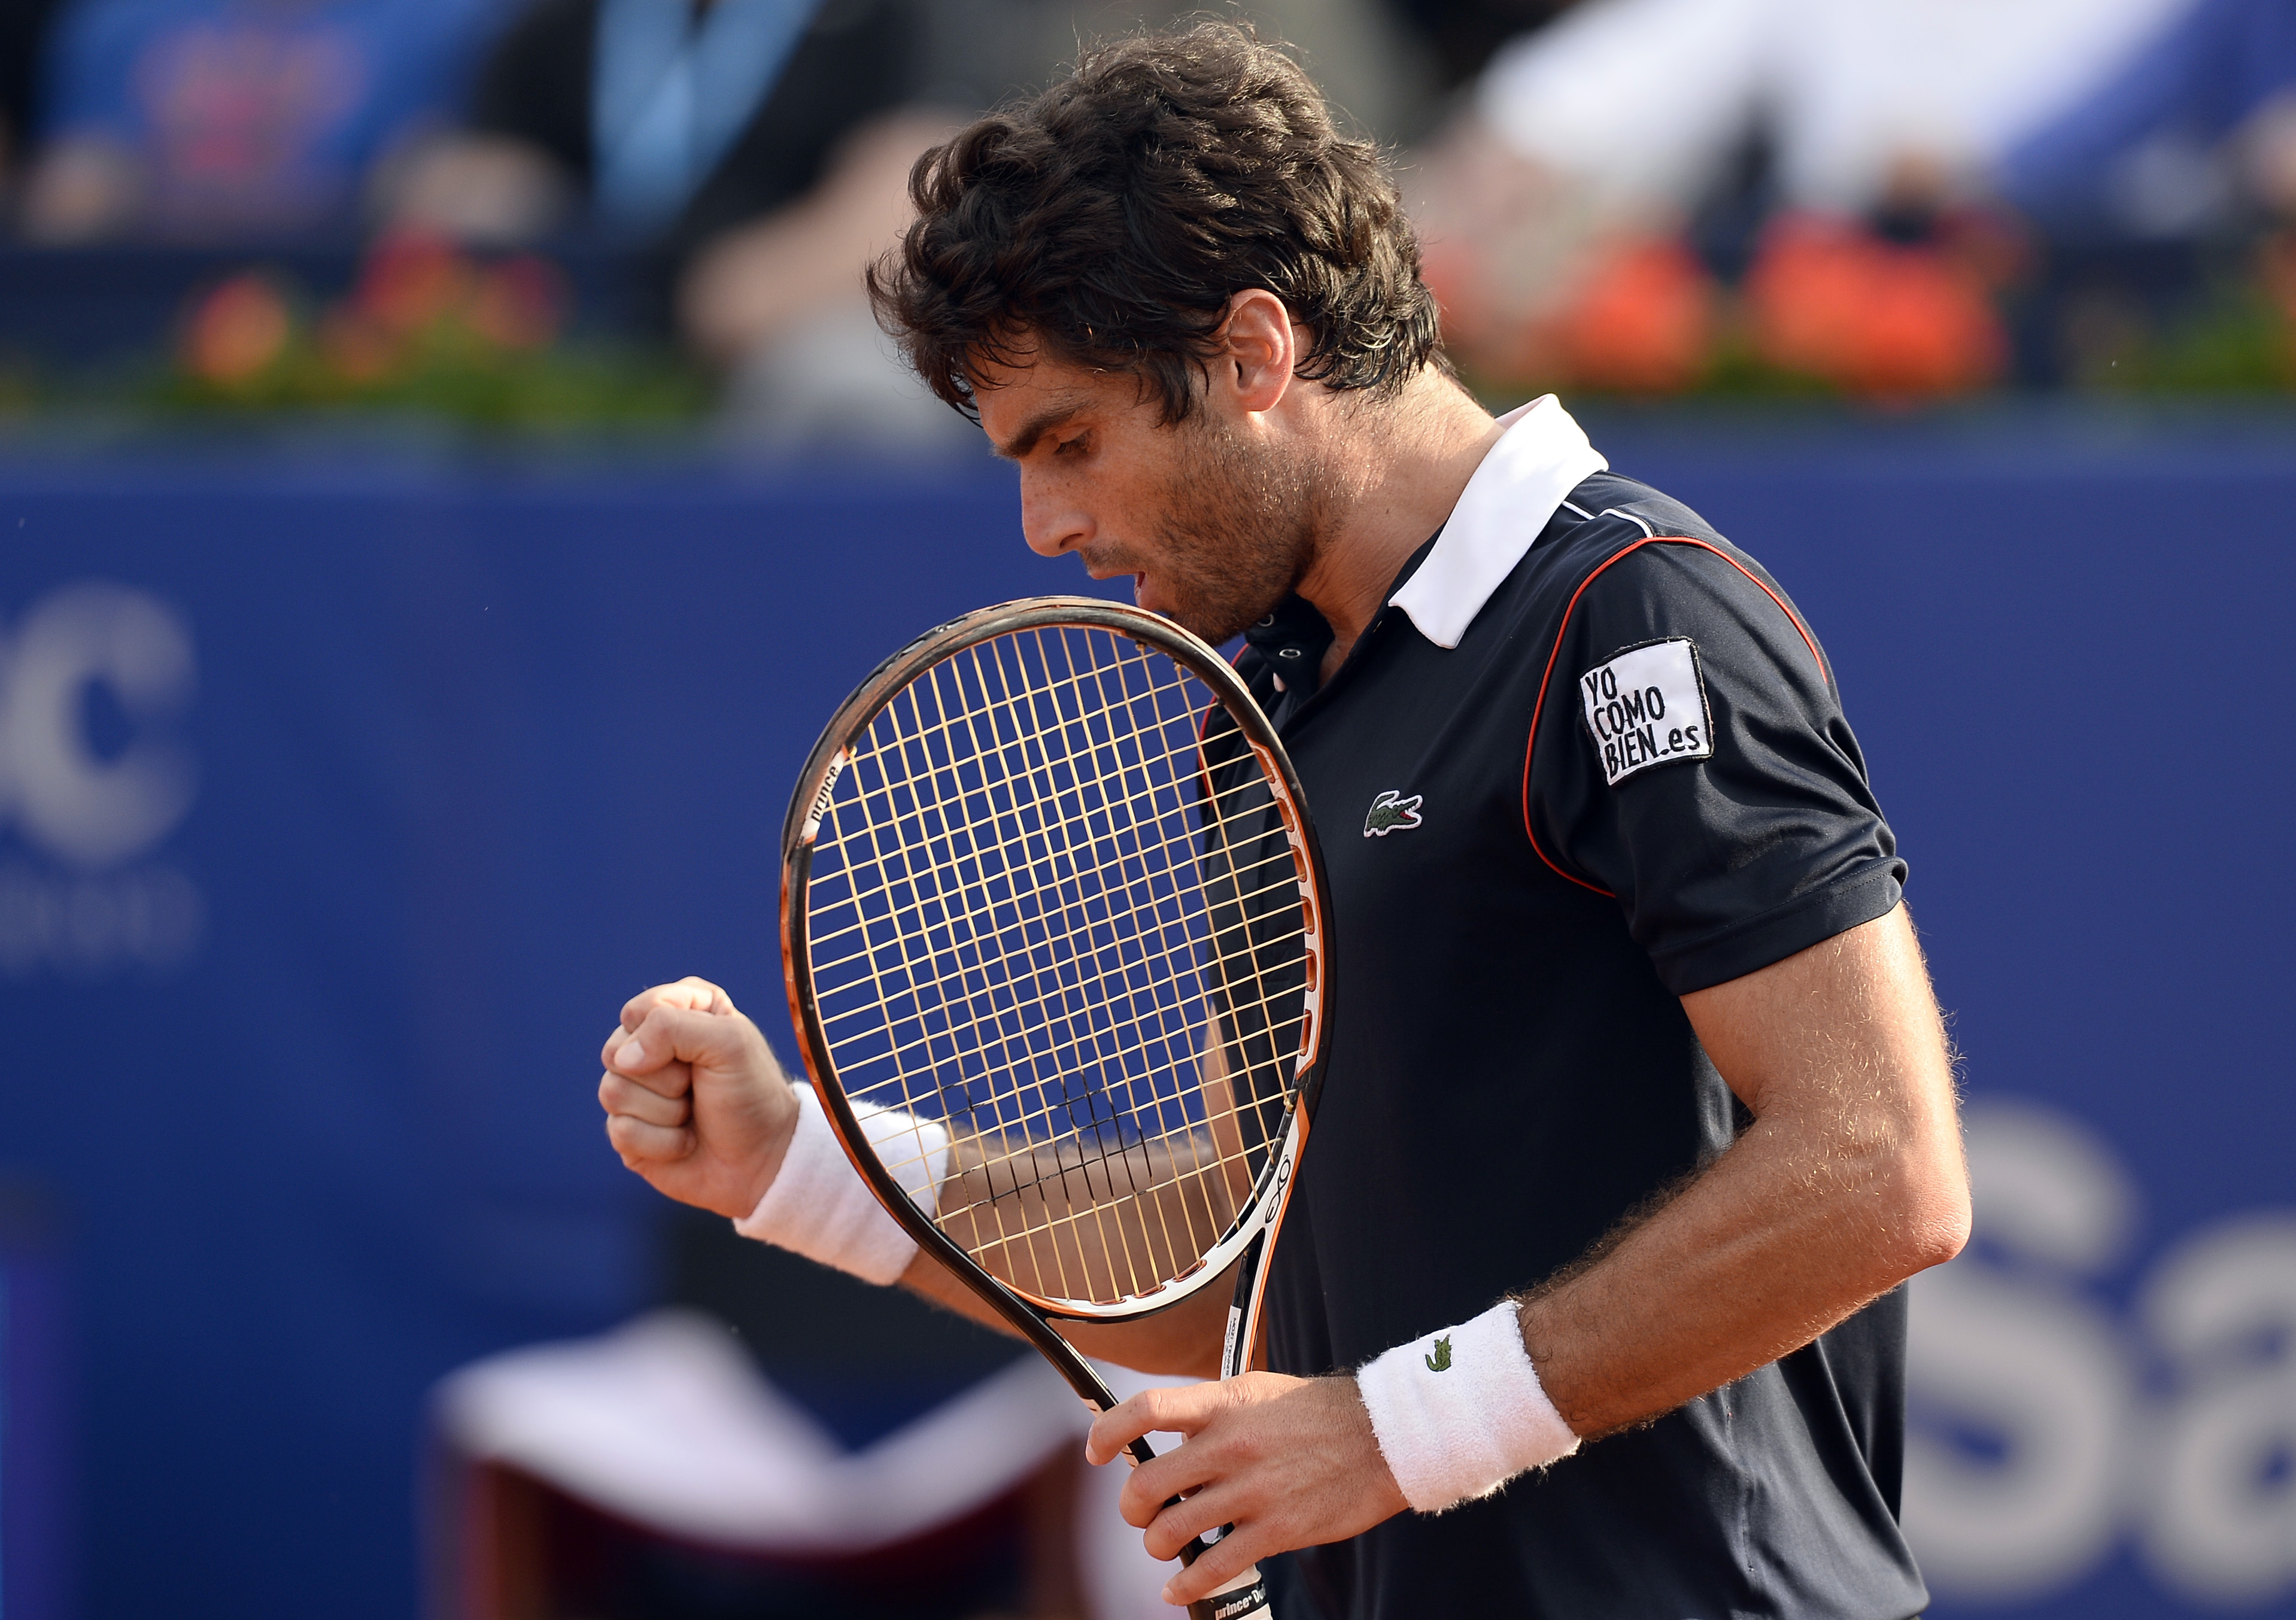 Spain's Pablo Andujar celebrates a point during the Barcelona Open tennis tournament final with Kei Nishikori of Japan in Barcelona, Spain, Sunday, April 26, 2015. (AP Photo/Manu Fernandez)